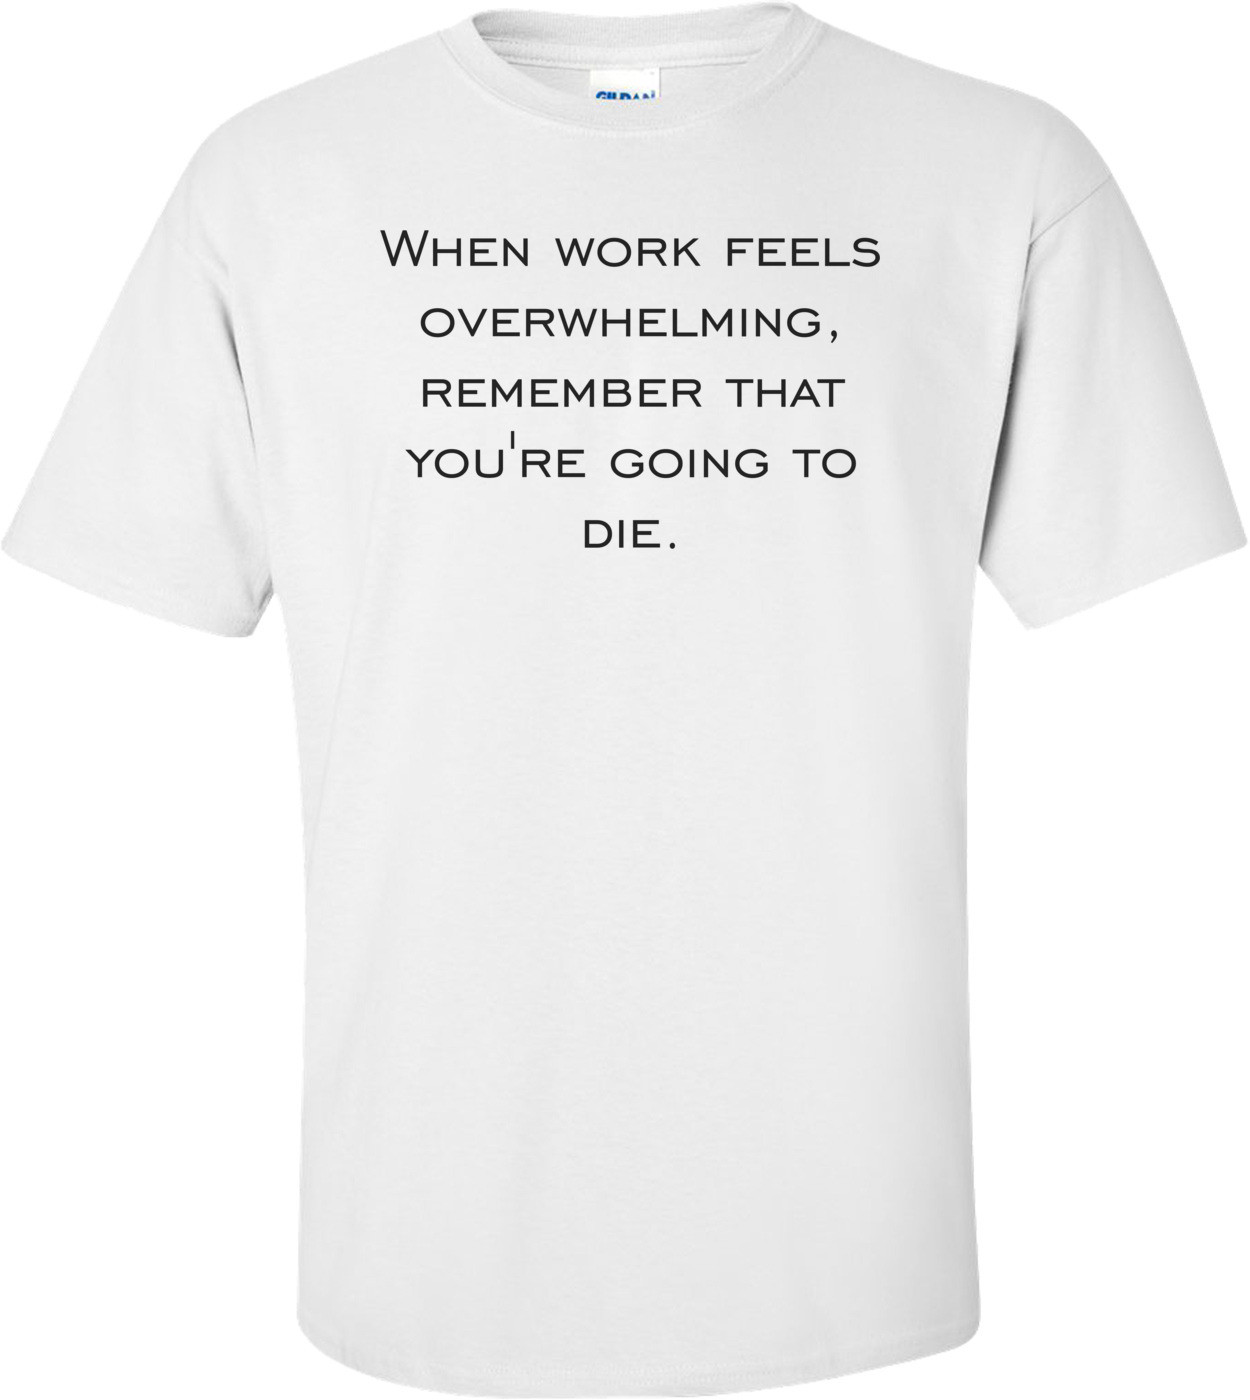 When work feels overwhelming, remember that you're going to die. Shirt